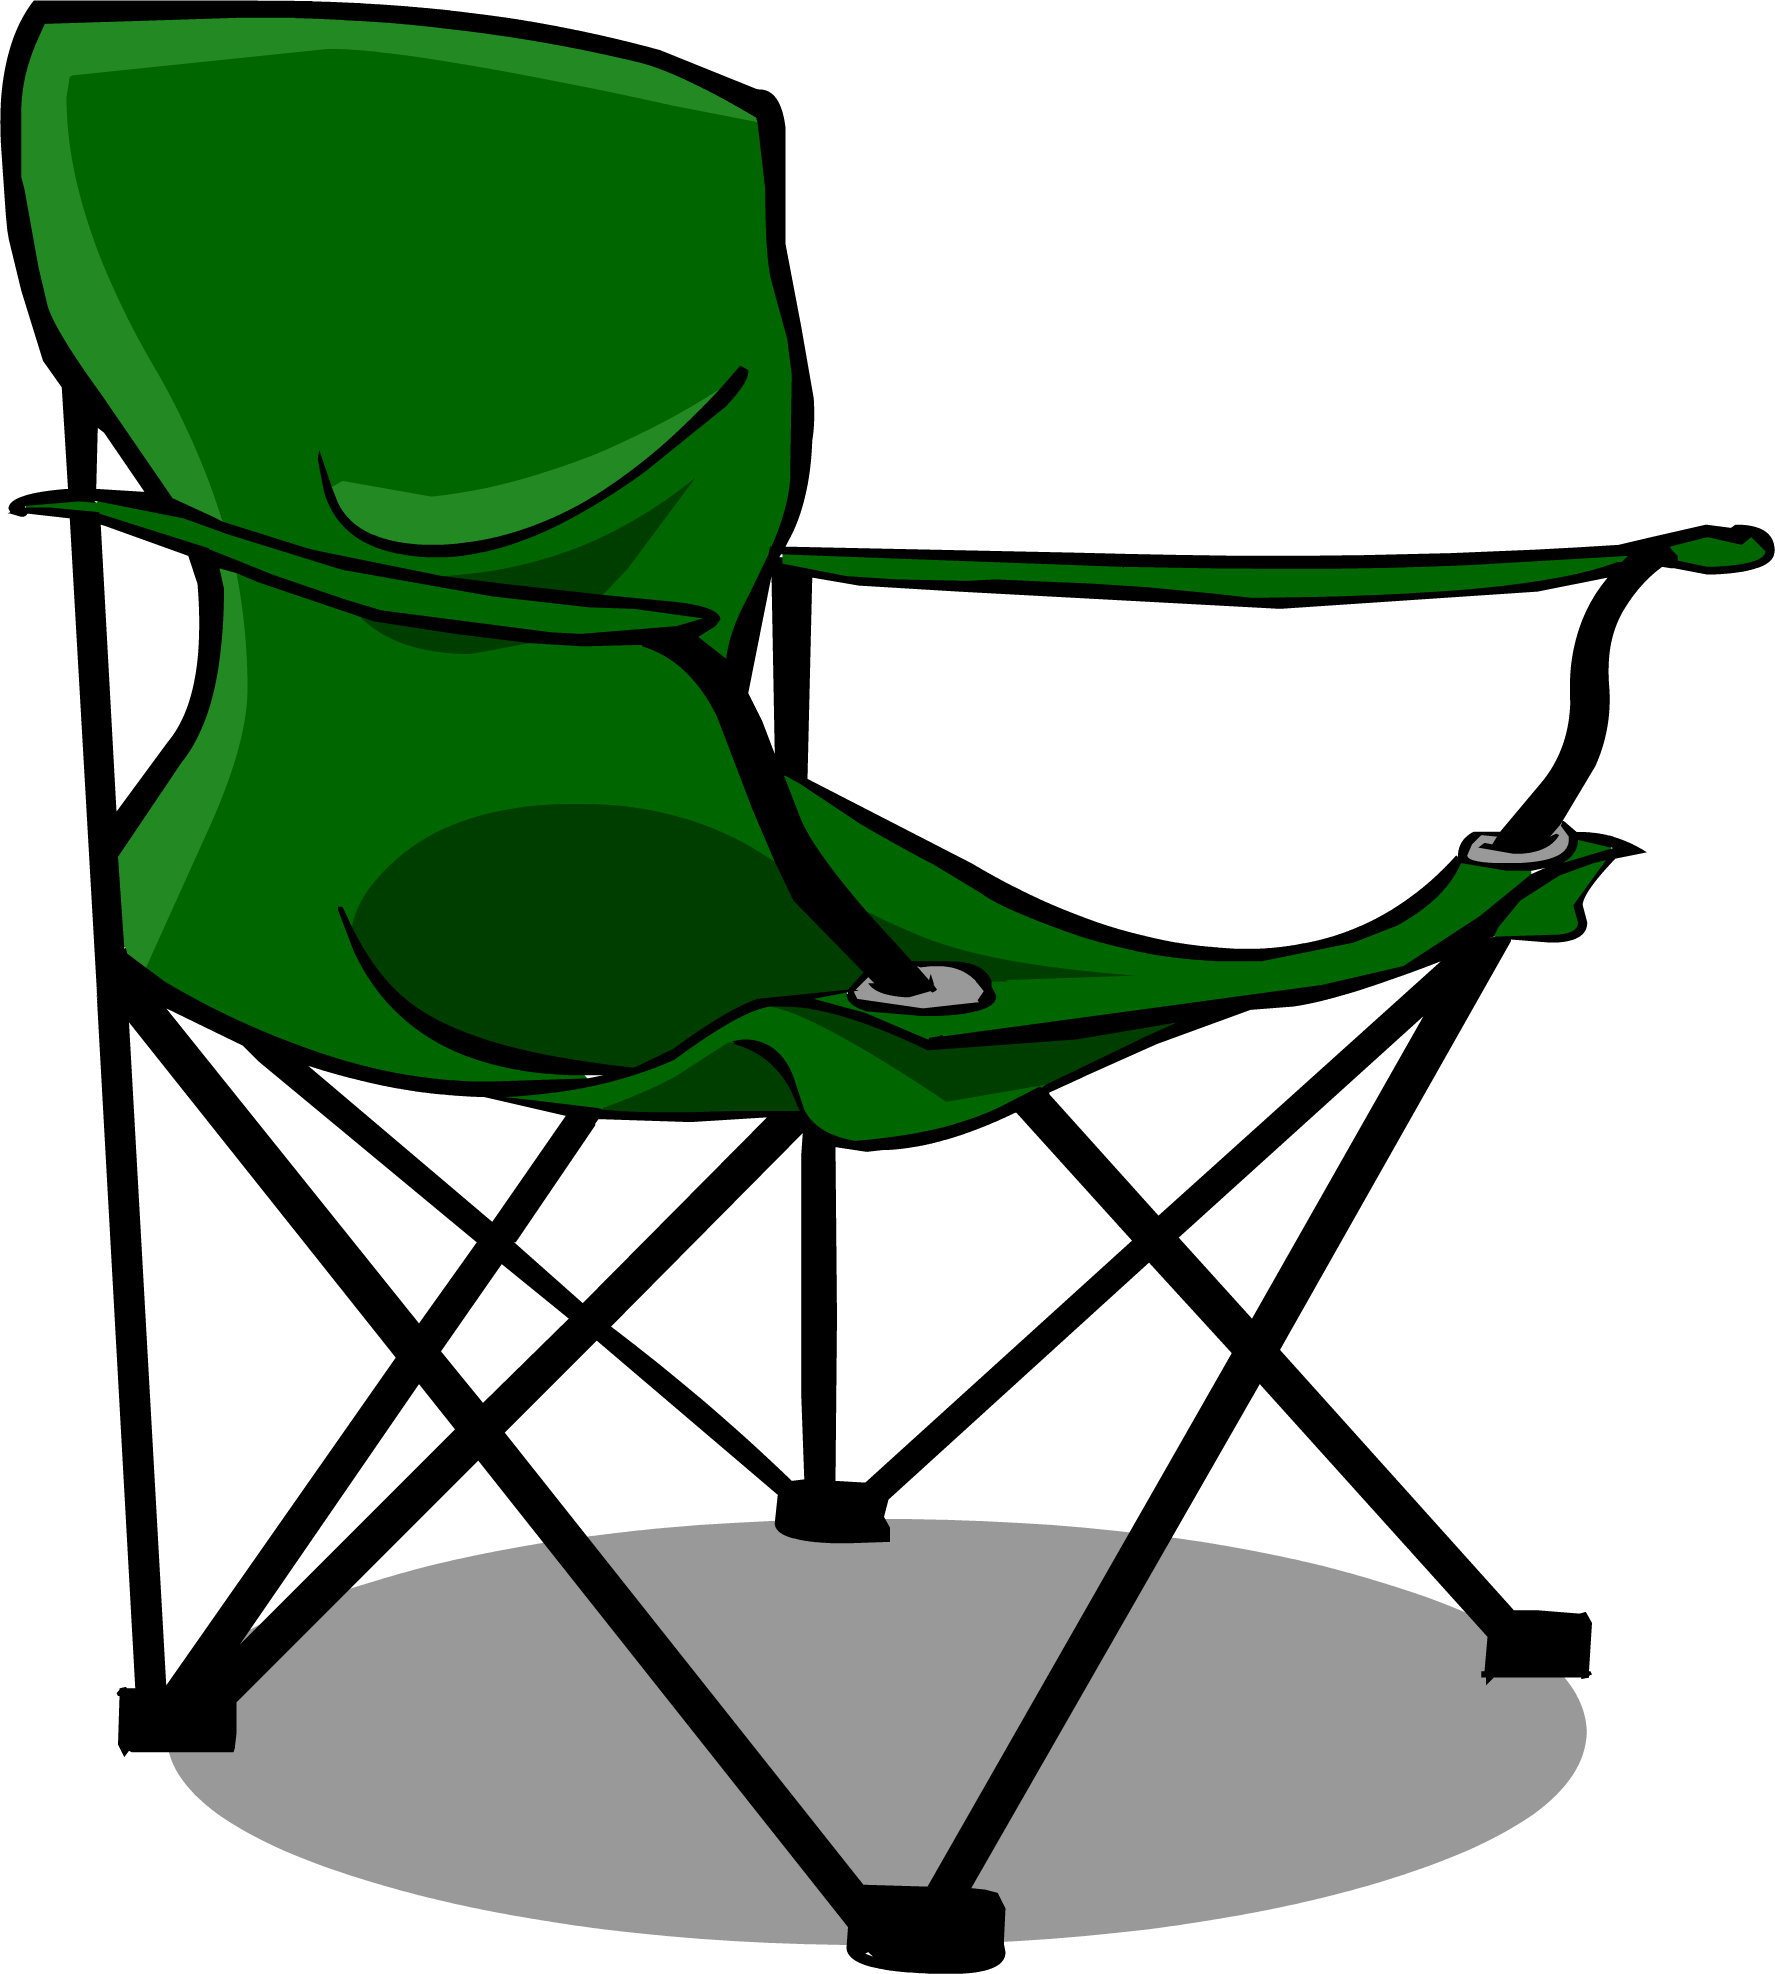 Clipart hat camping. Image chair sprite png